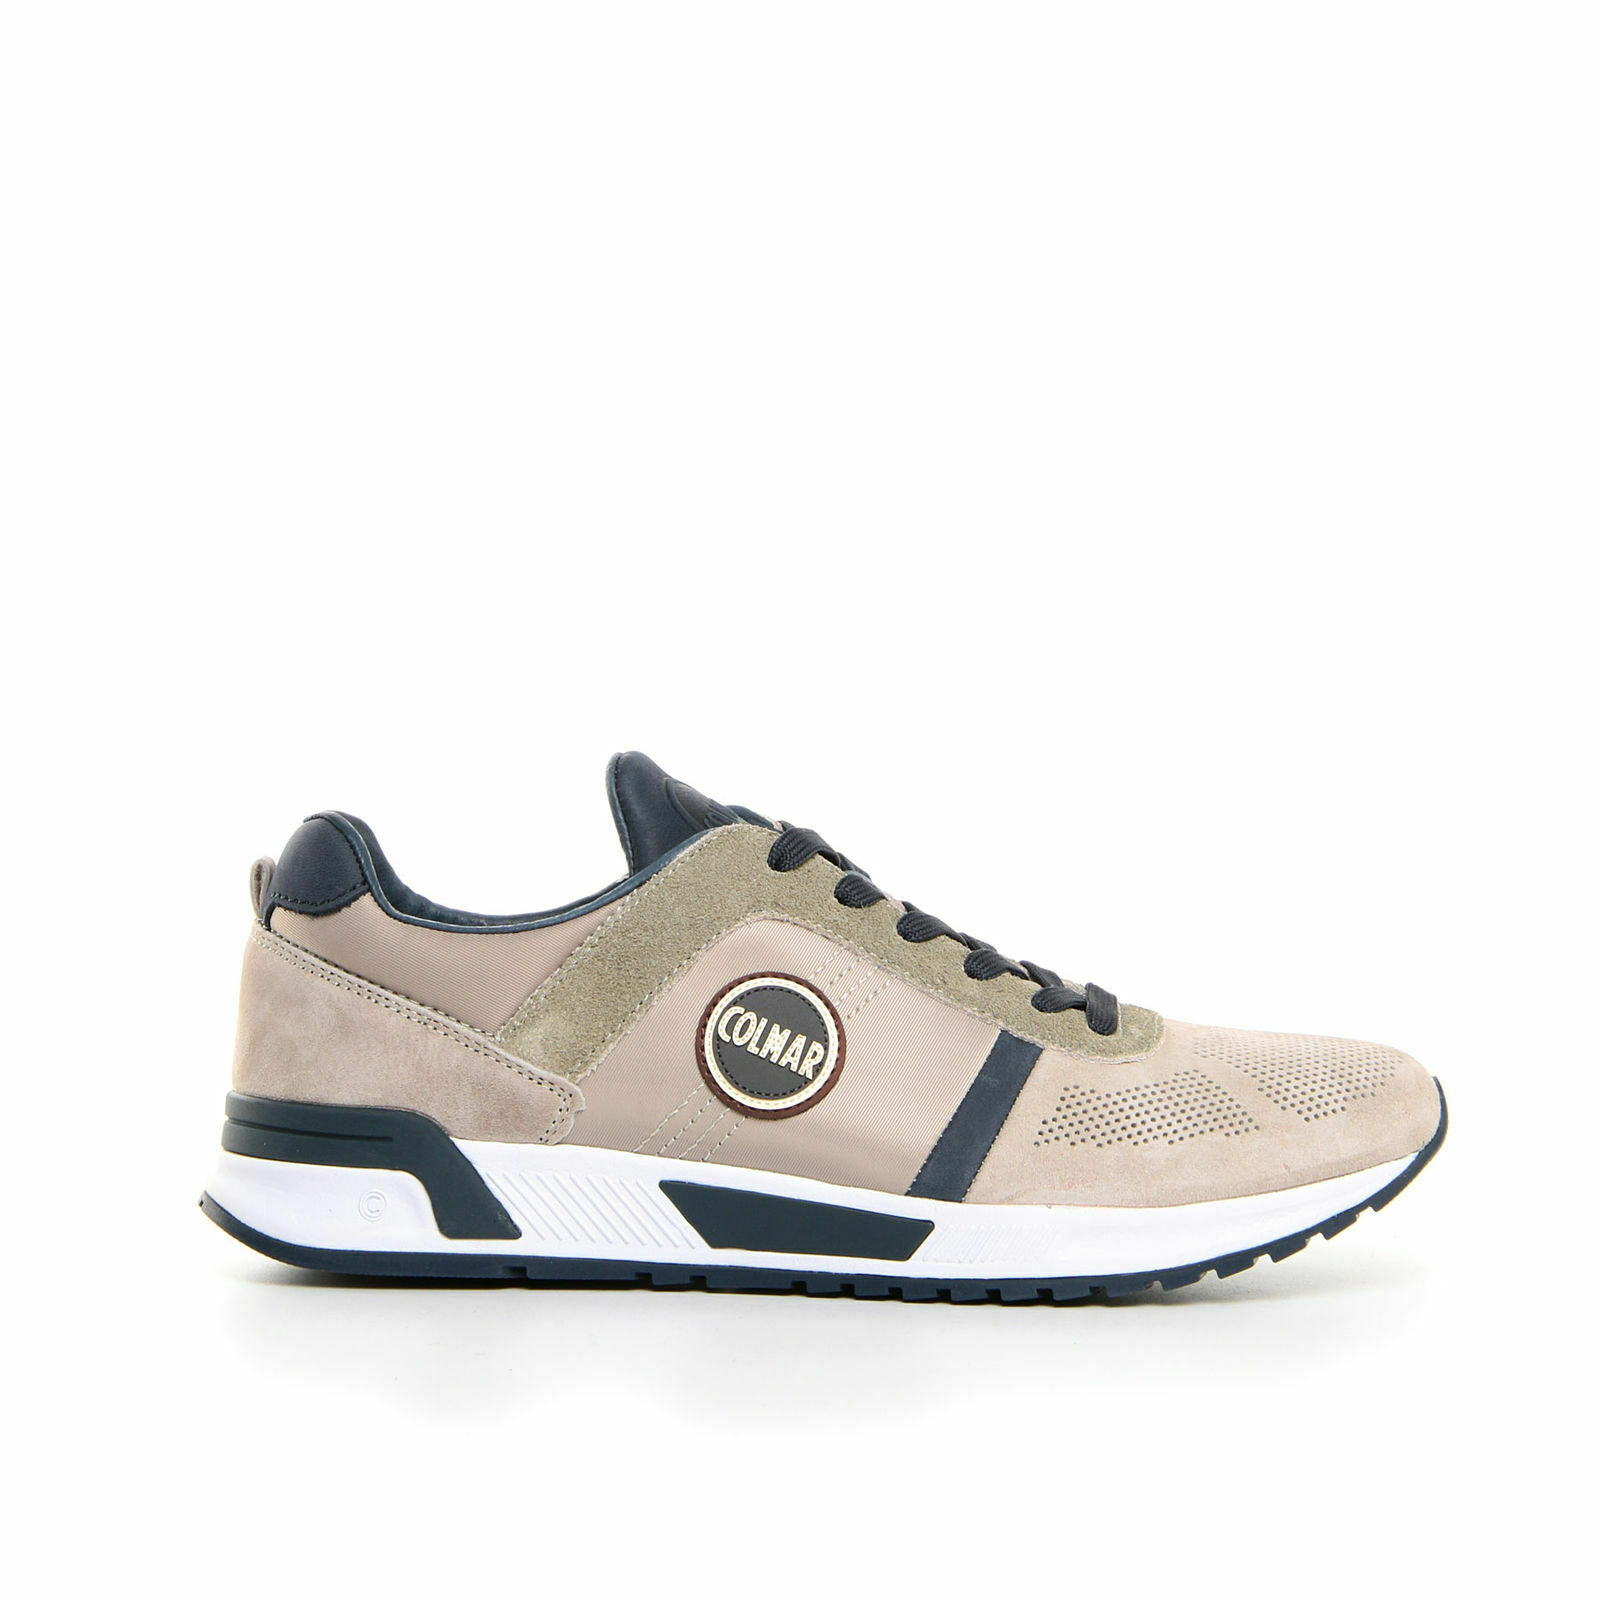 SCARPE SNEAKERS UOMO COLMAR ORIGINALE TRAVIS EVOLUTION 021 PELLE A/I 2018/19 NEW